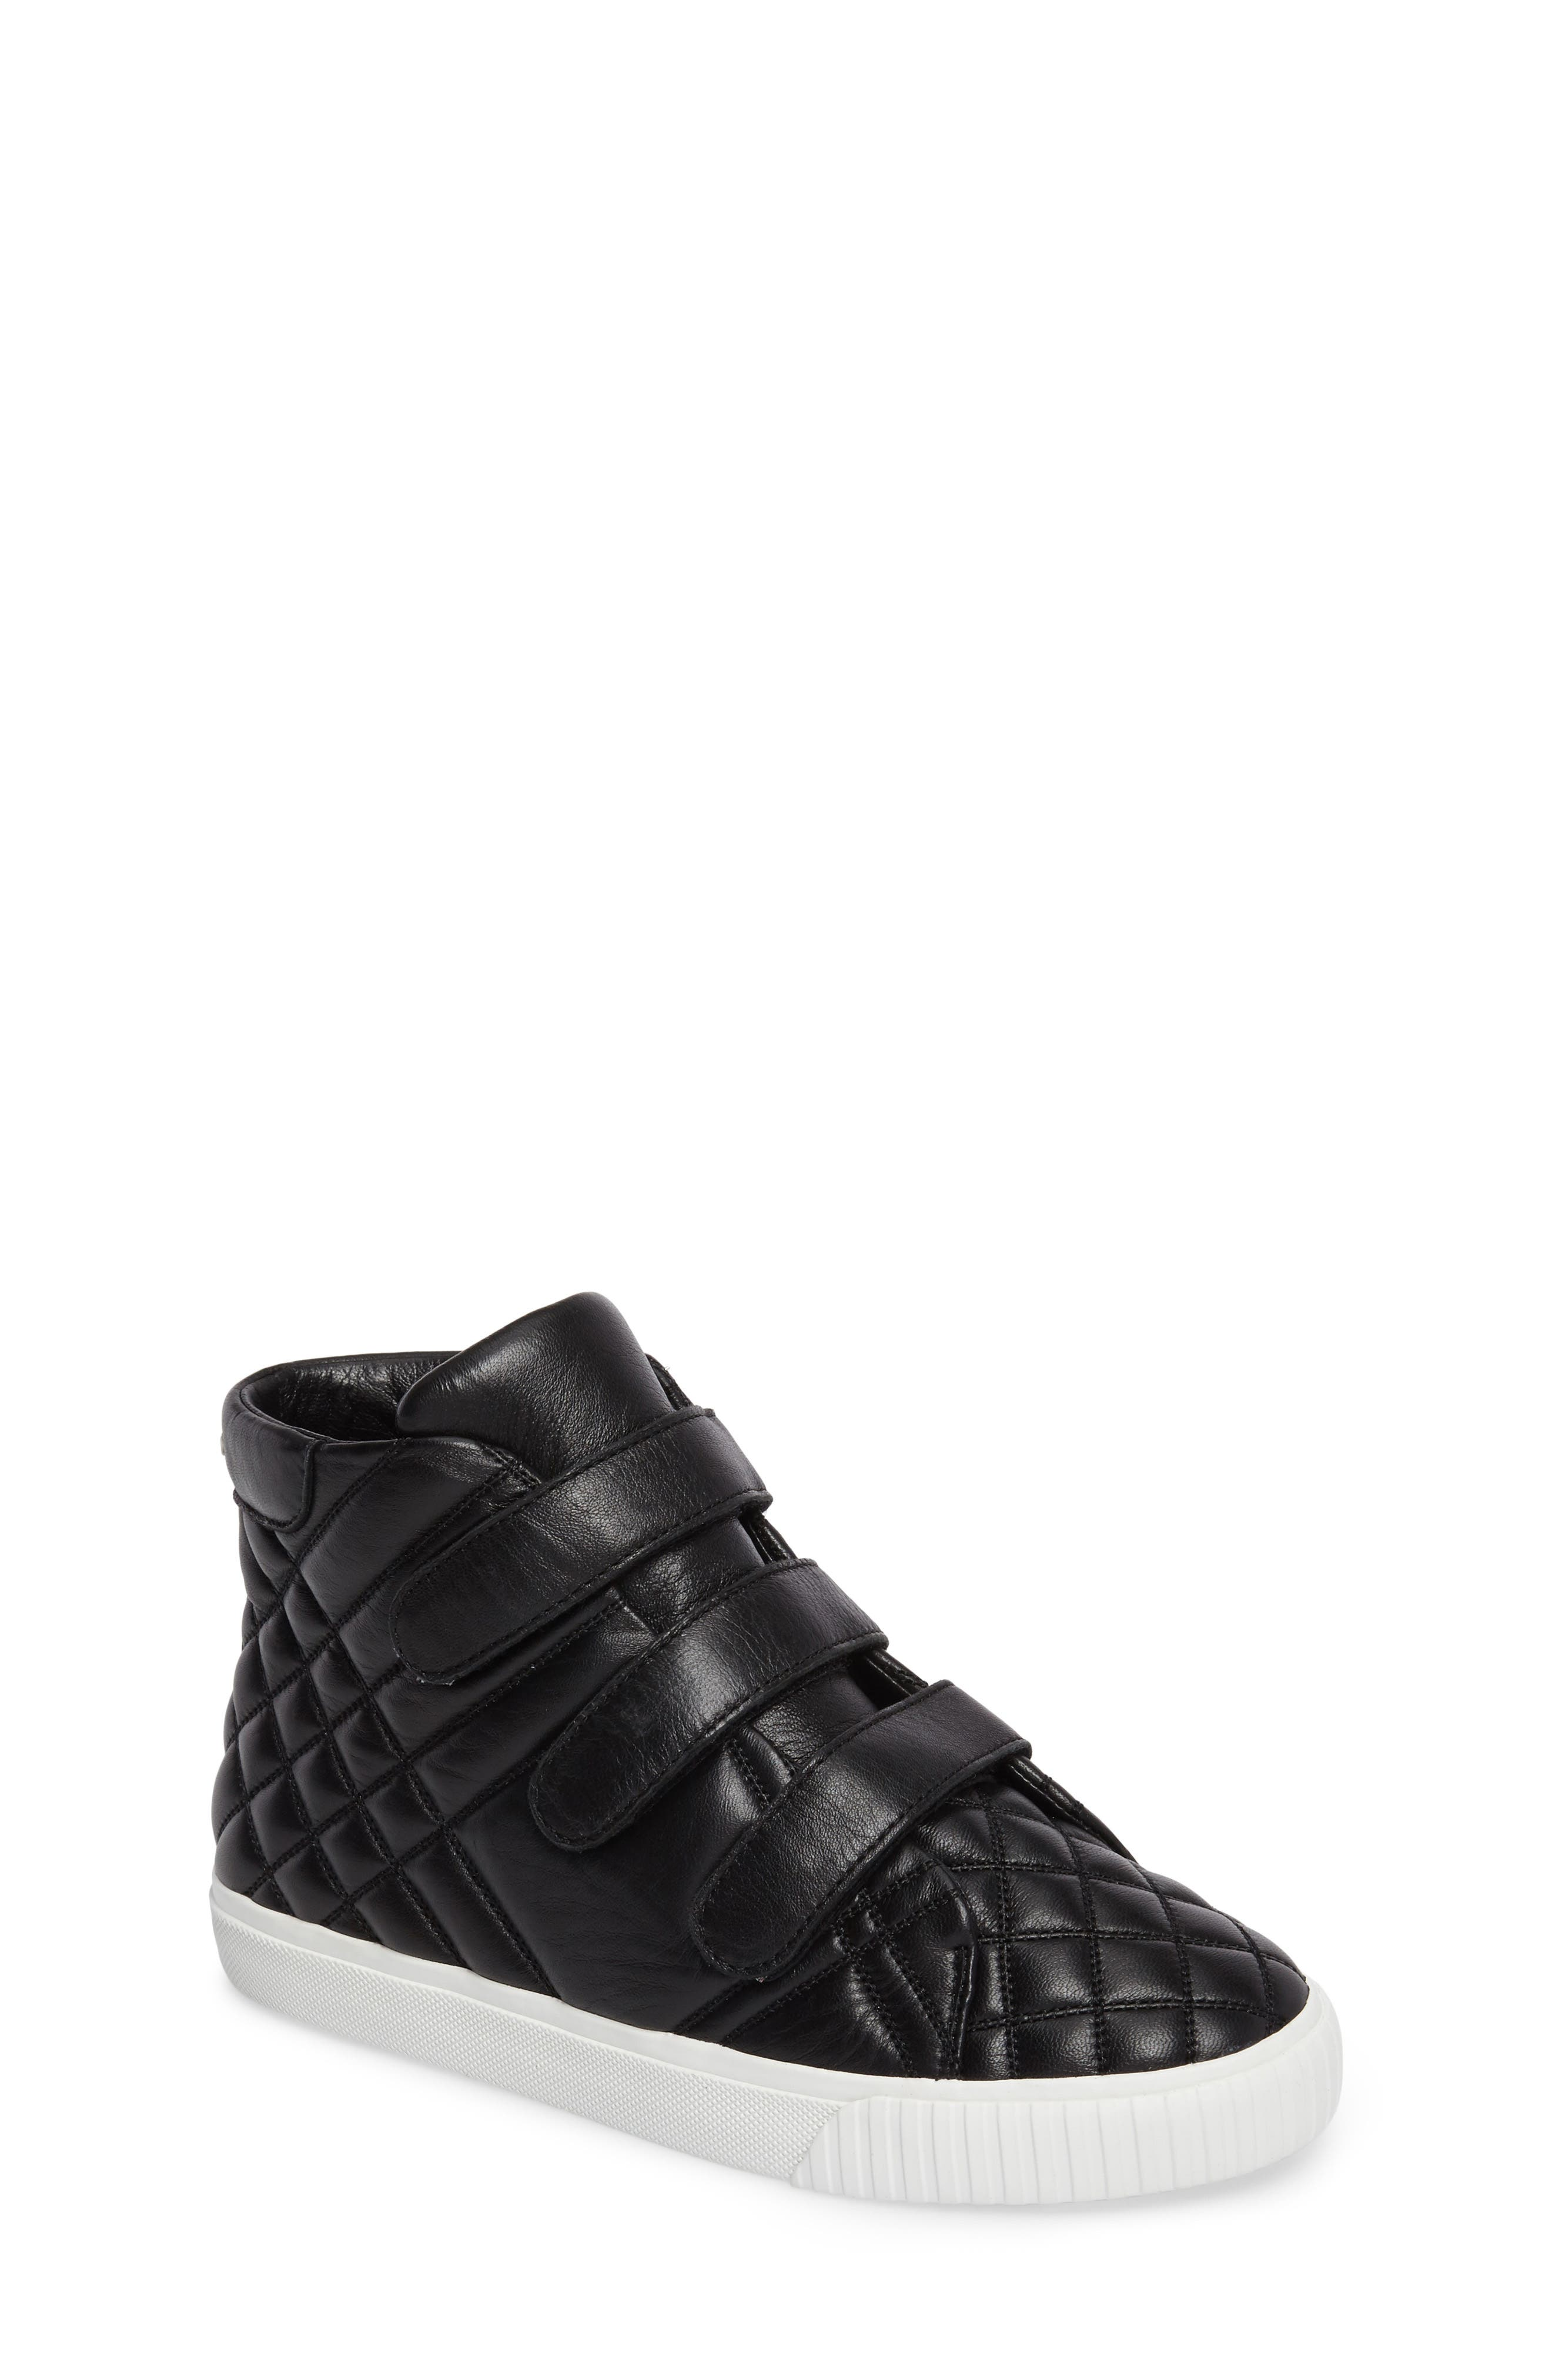 Sturrock Quilted High Top Sneaker,                         Main,                         color, 001